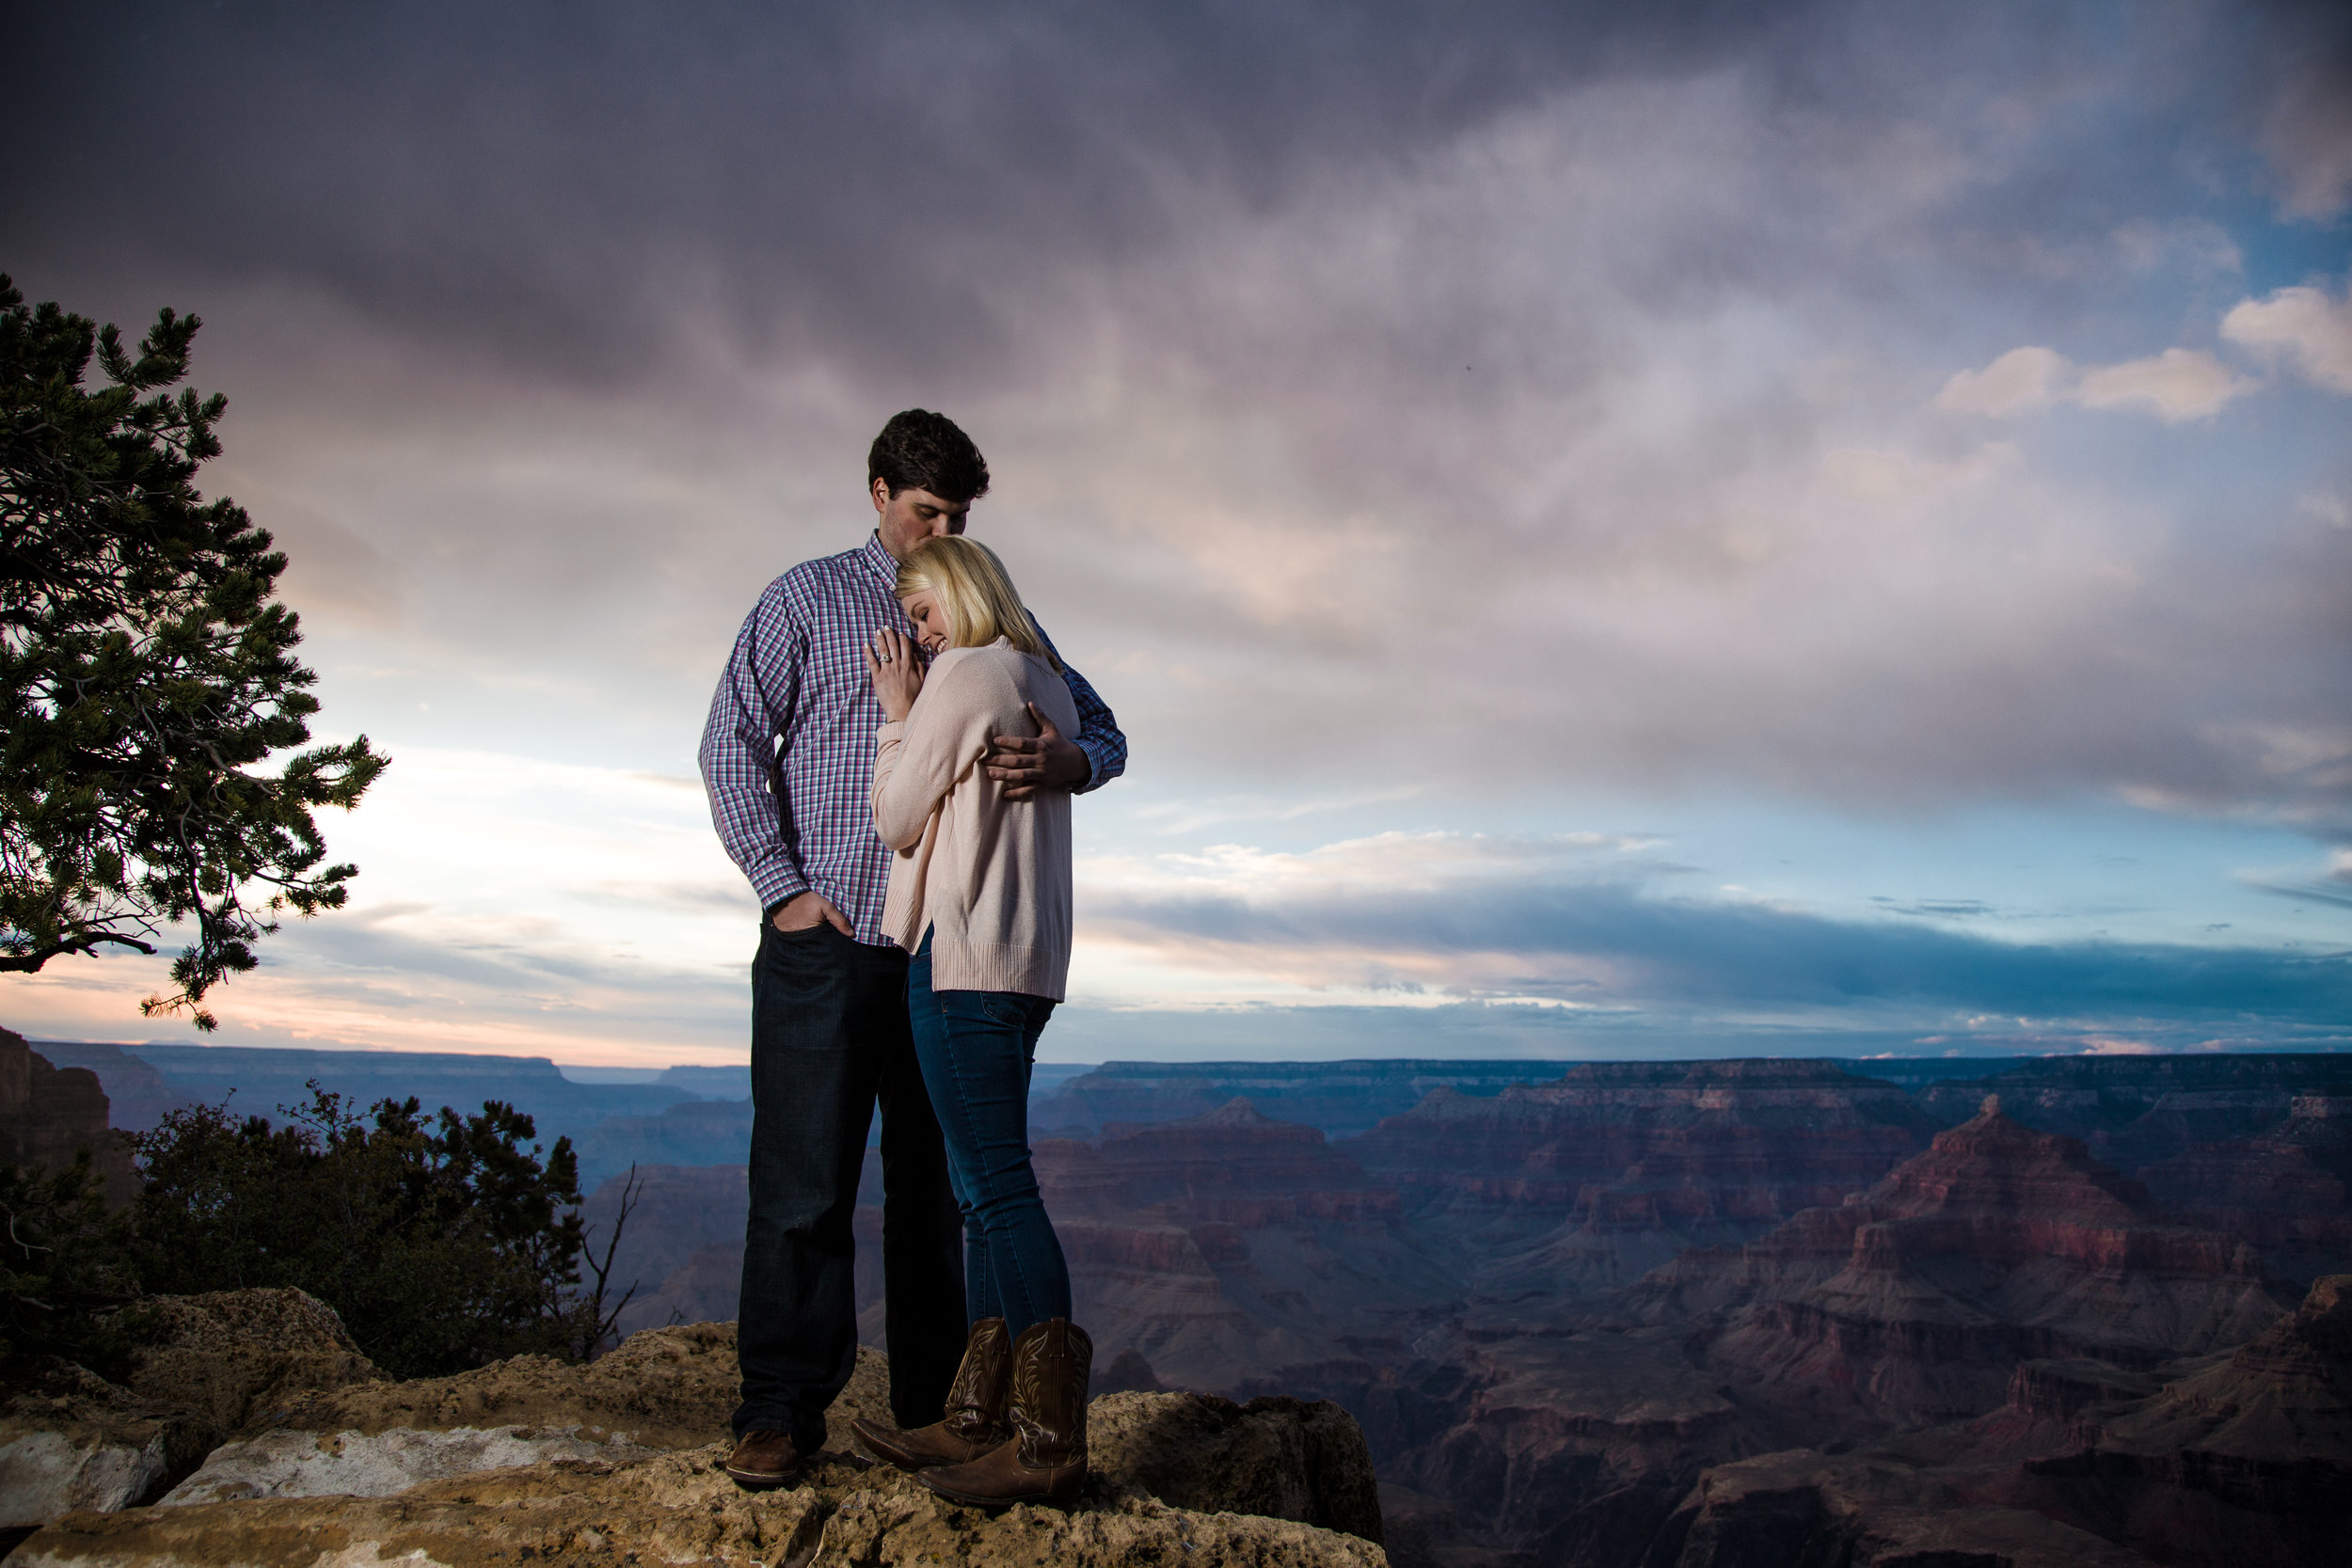 Grand Canyon quiet moment